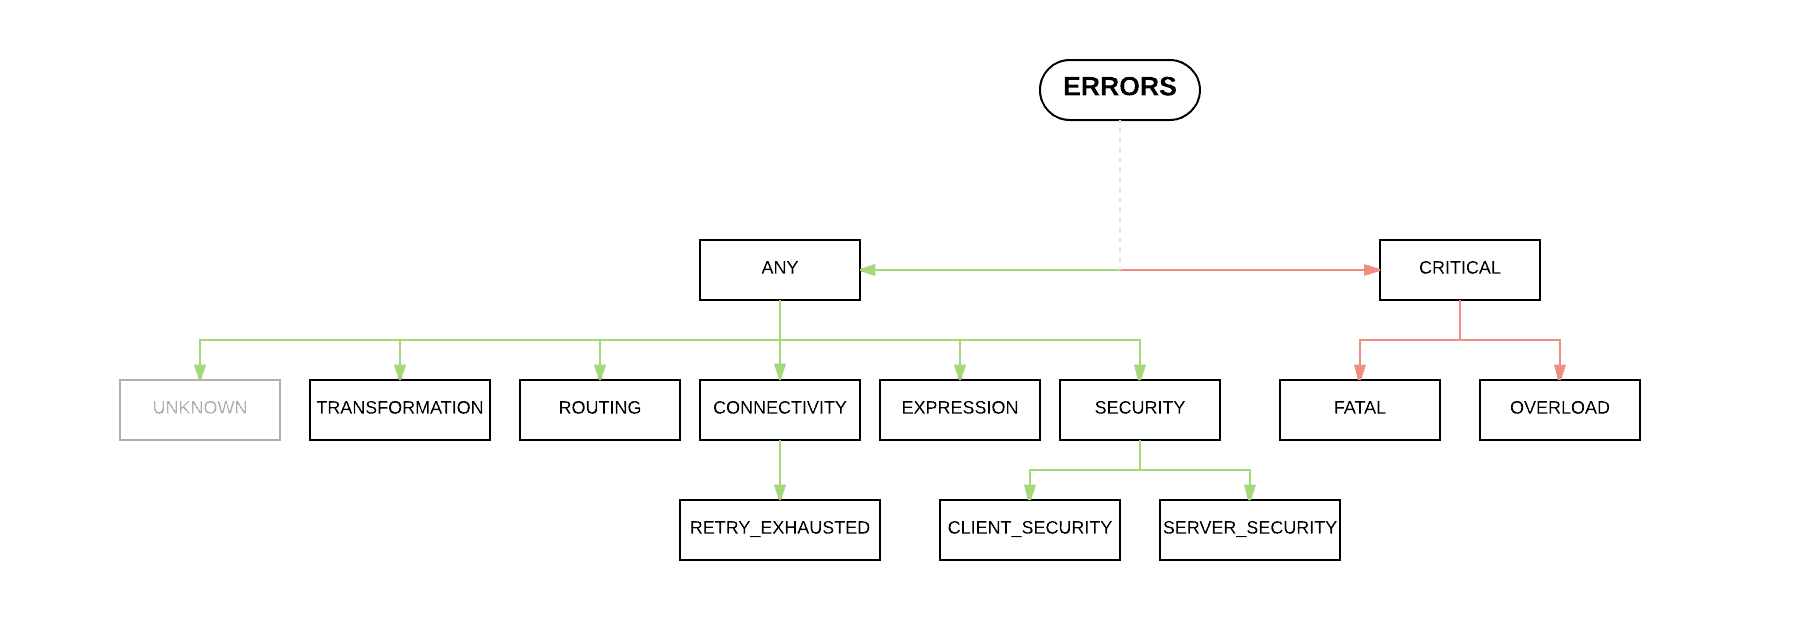 A Look into Error Handling in Mule 4 Beta | MuleSoft Blog